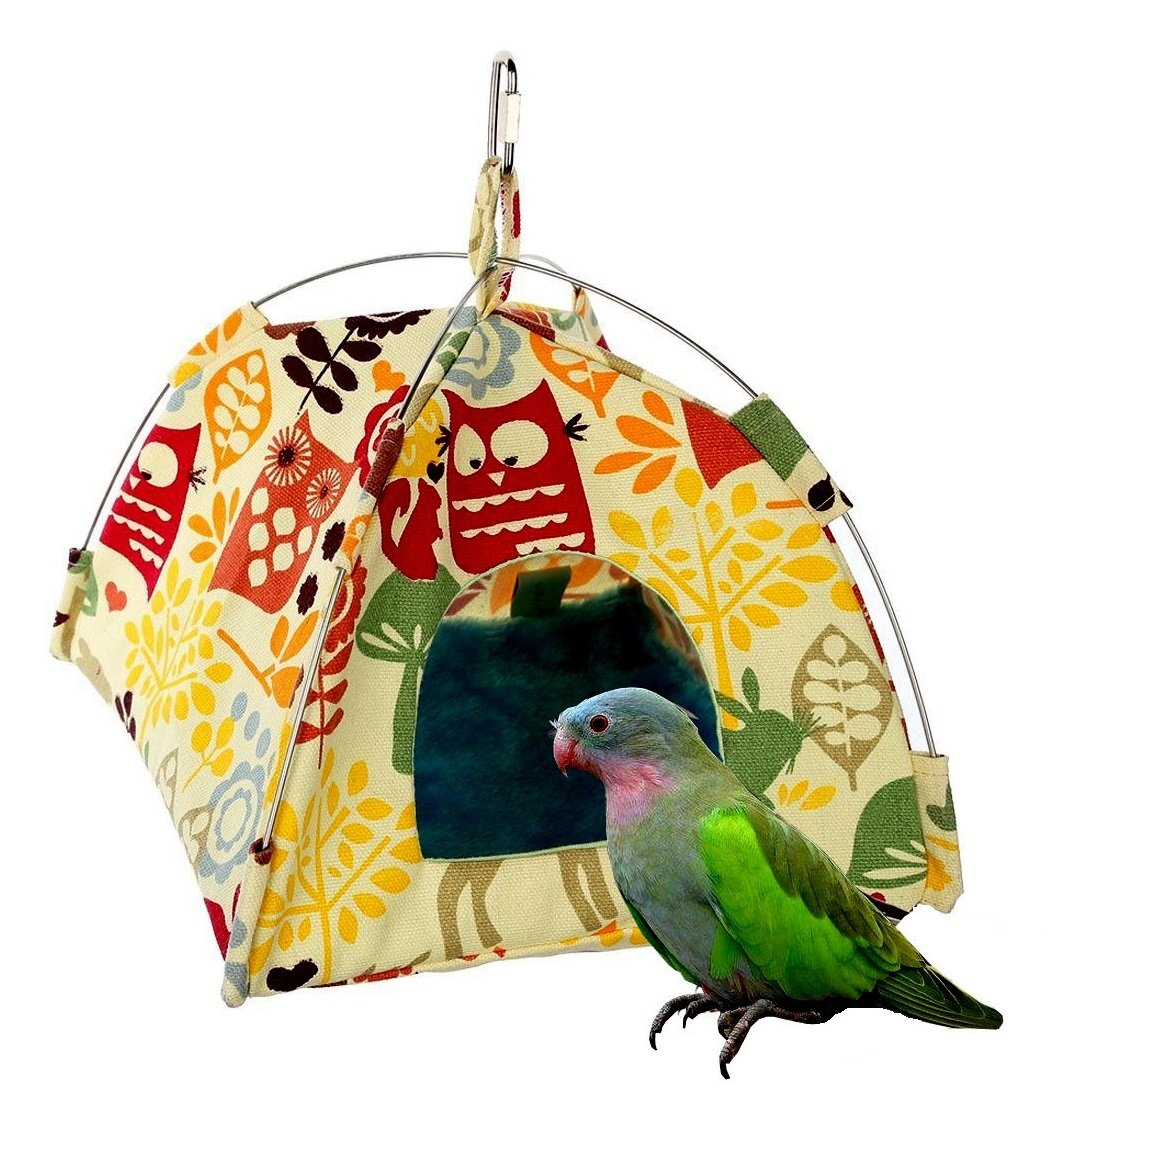 Alwaysuc Bird toys Bird Hammock Parrot Hanging Tent Budgerigar Dual Layer Nest Parakeet Cave Tent for Medium Birds